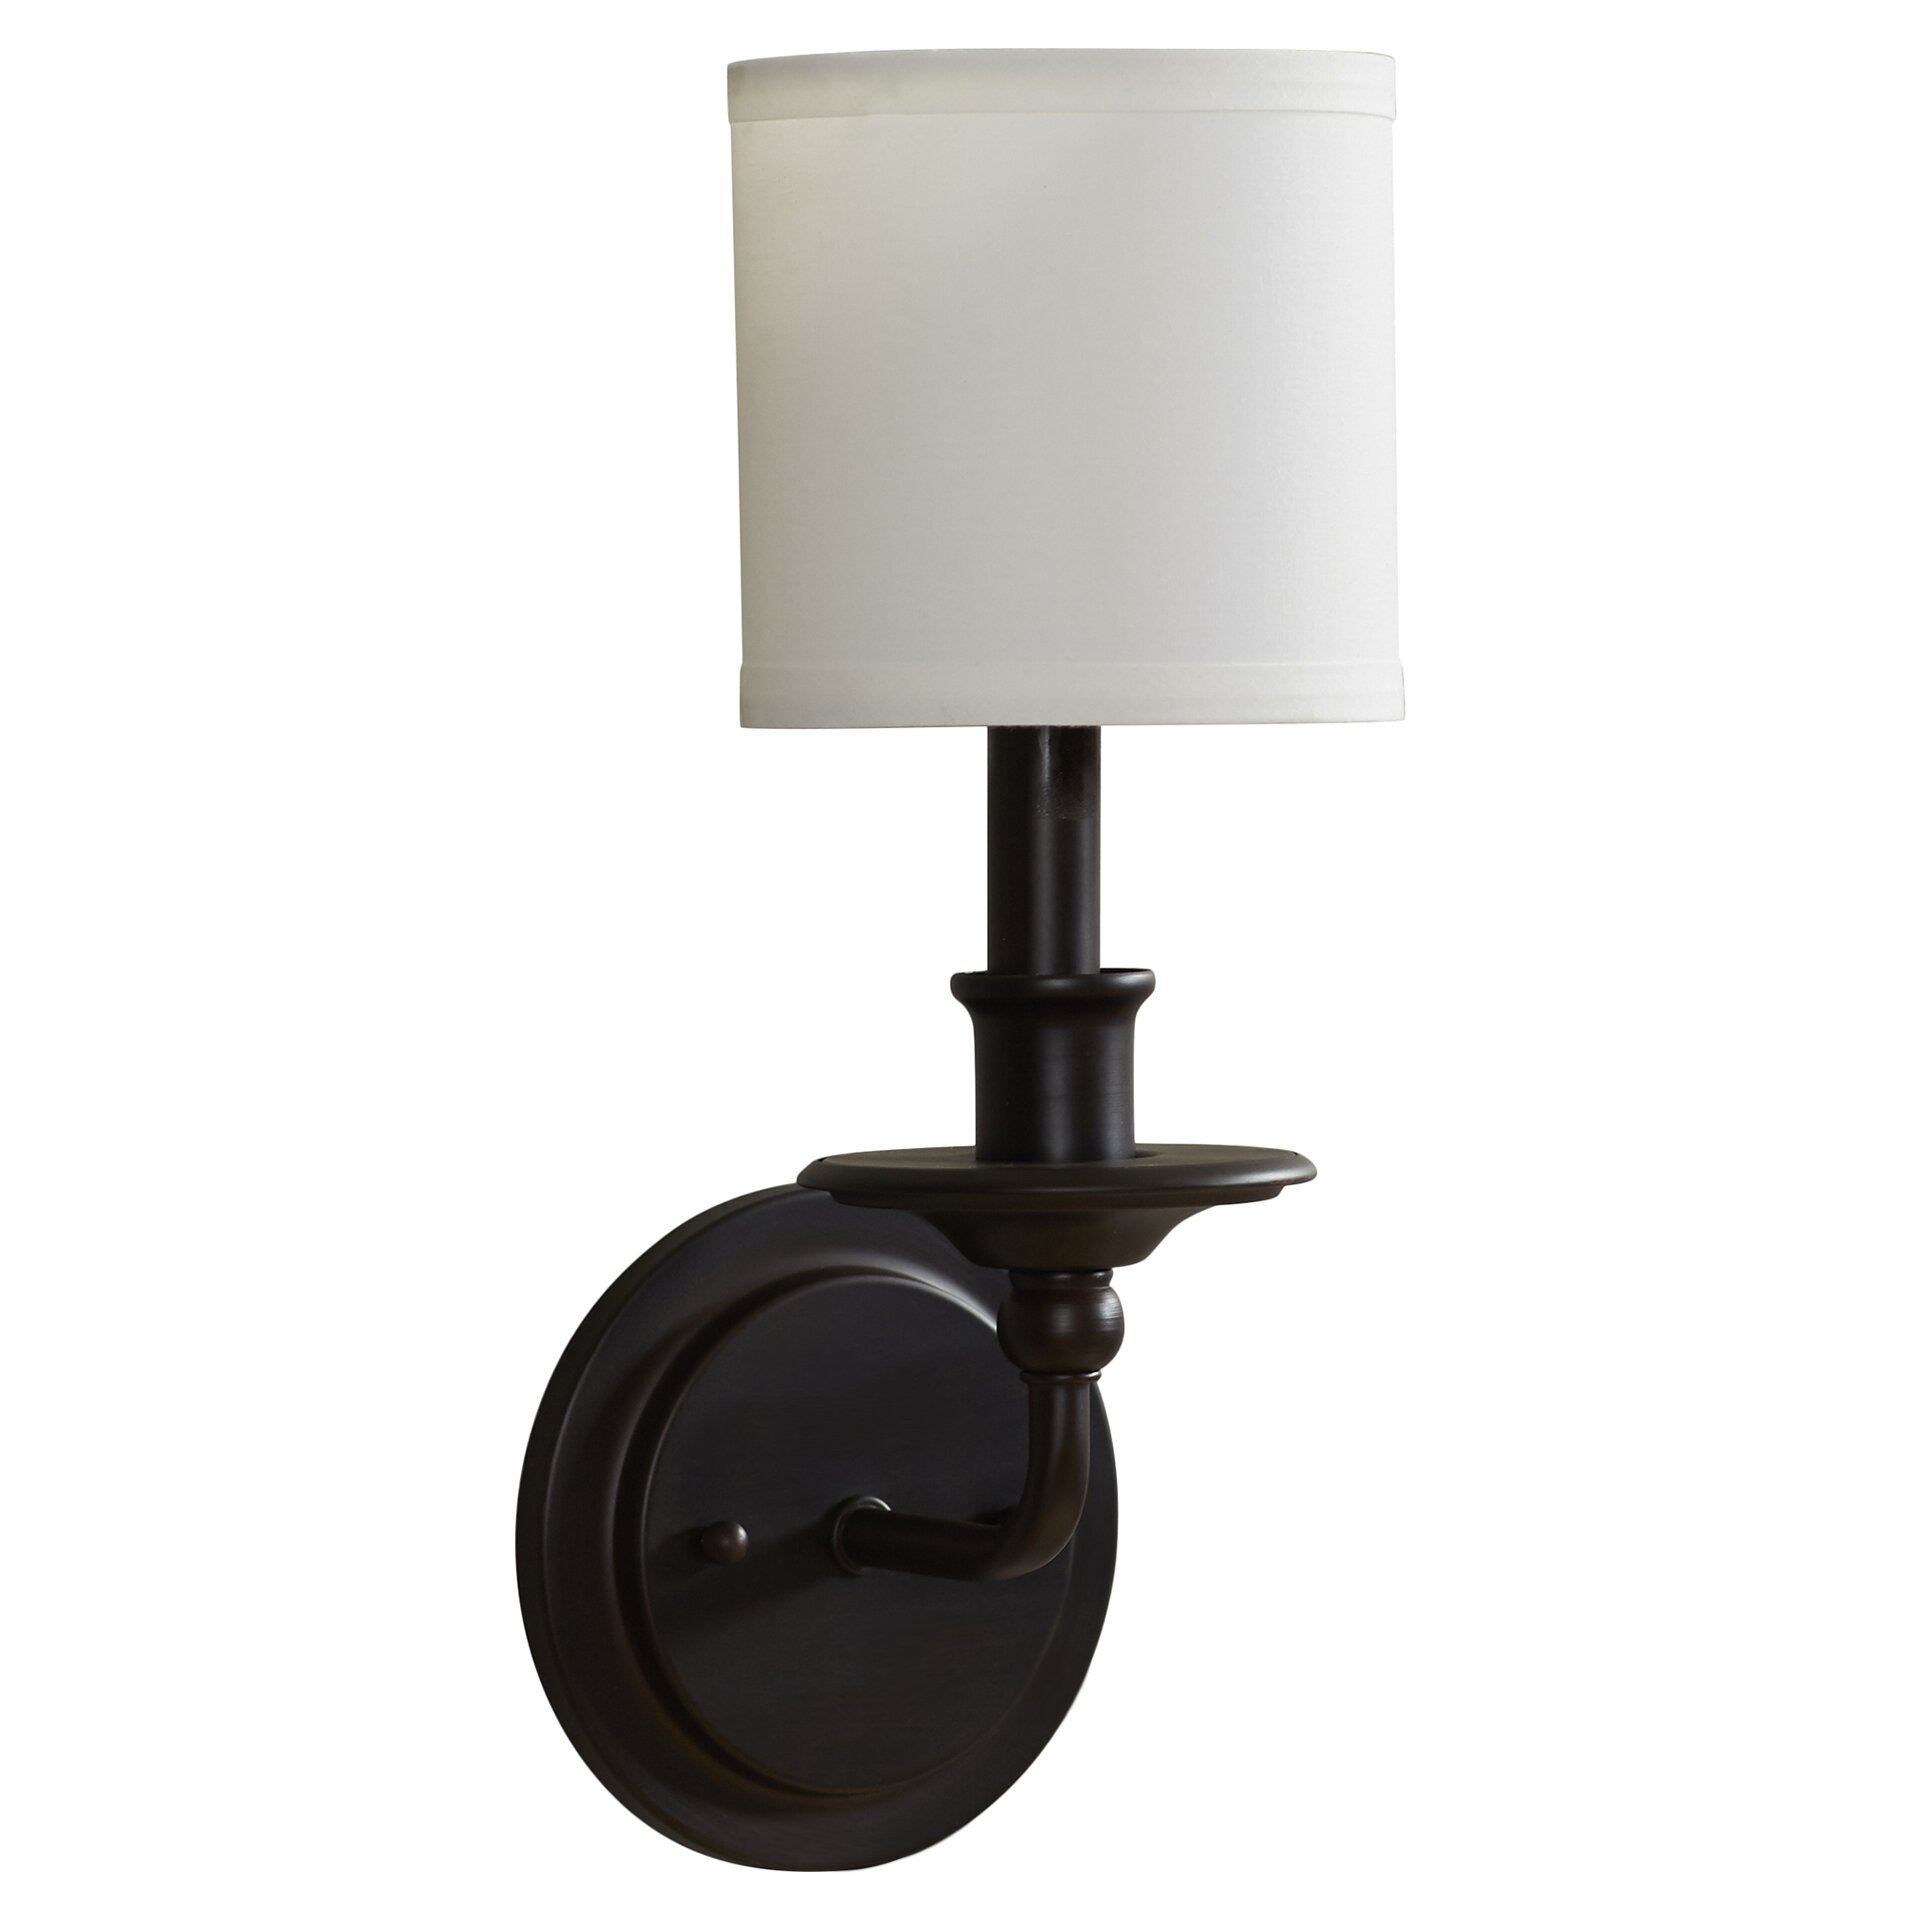 Wall Sconce With Magnifying Glass : Alcott Hill Holes 1 Light Wall Sconce & Reviews Wayfair